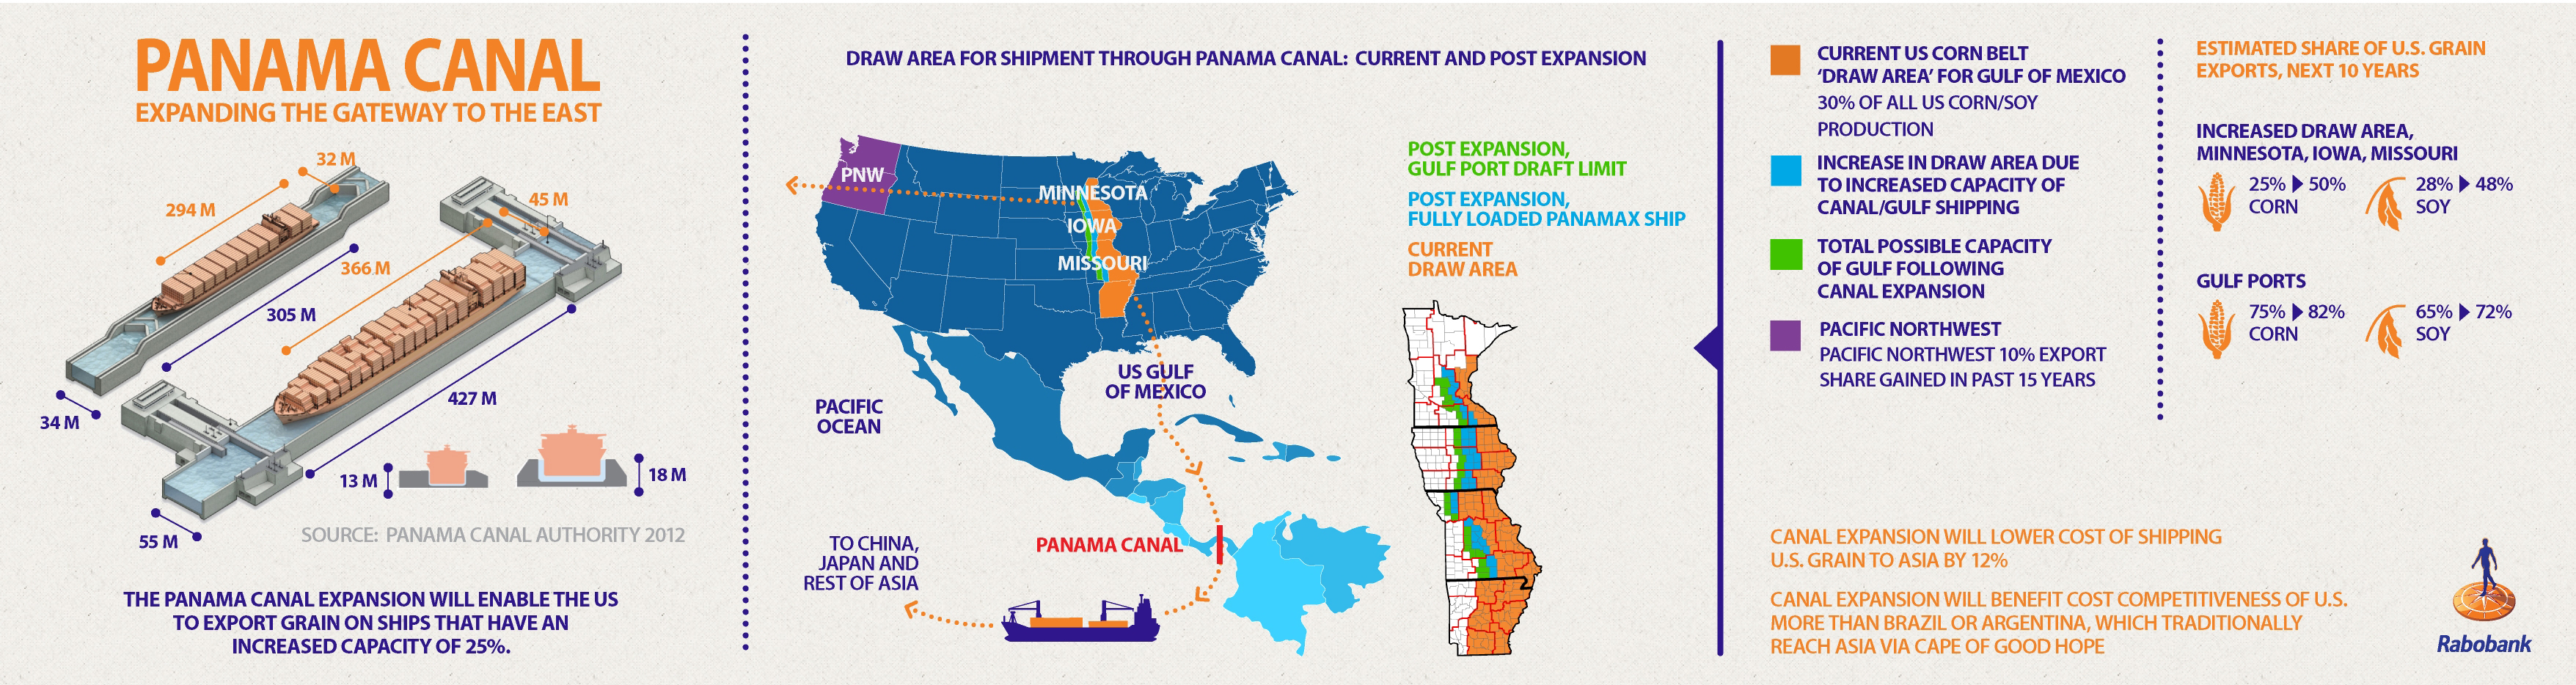 Panama C Expansion To Lower Cost Of